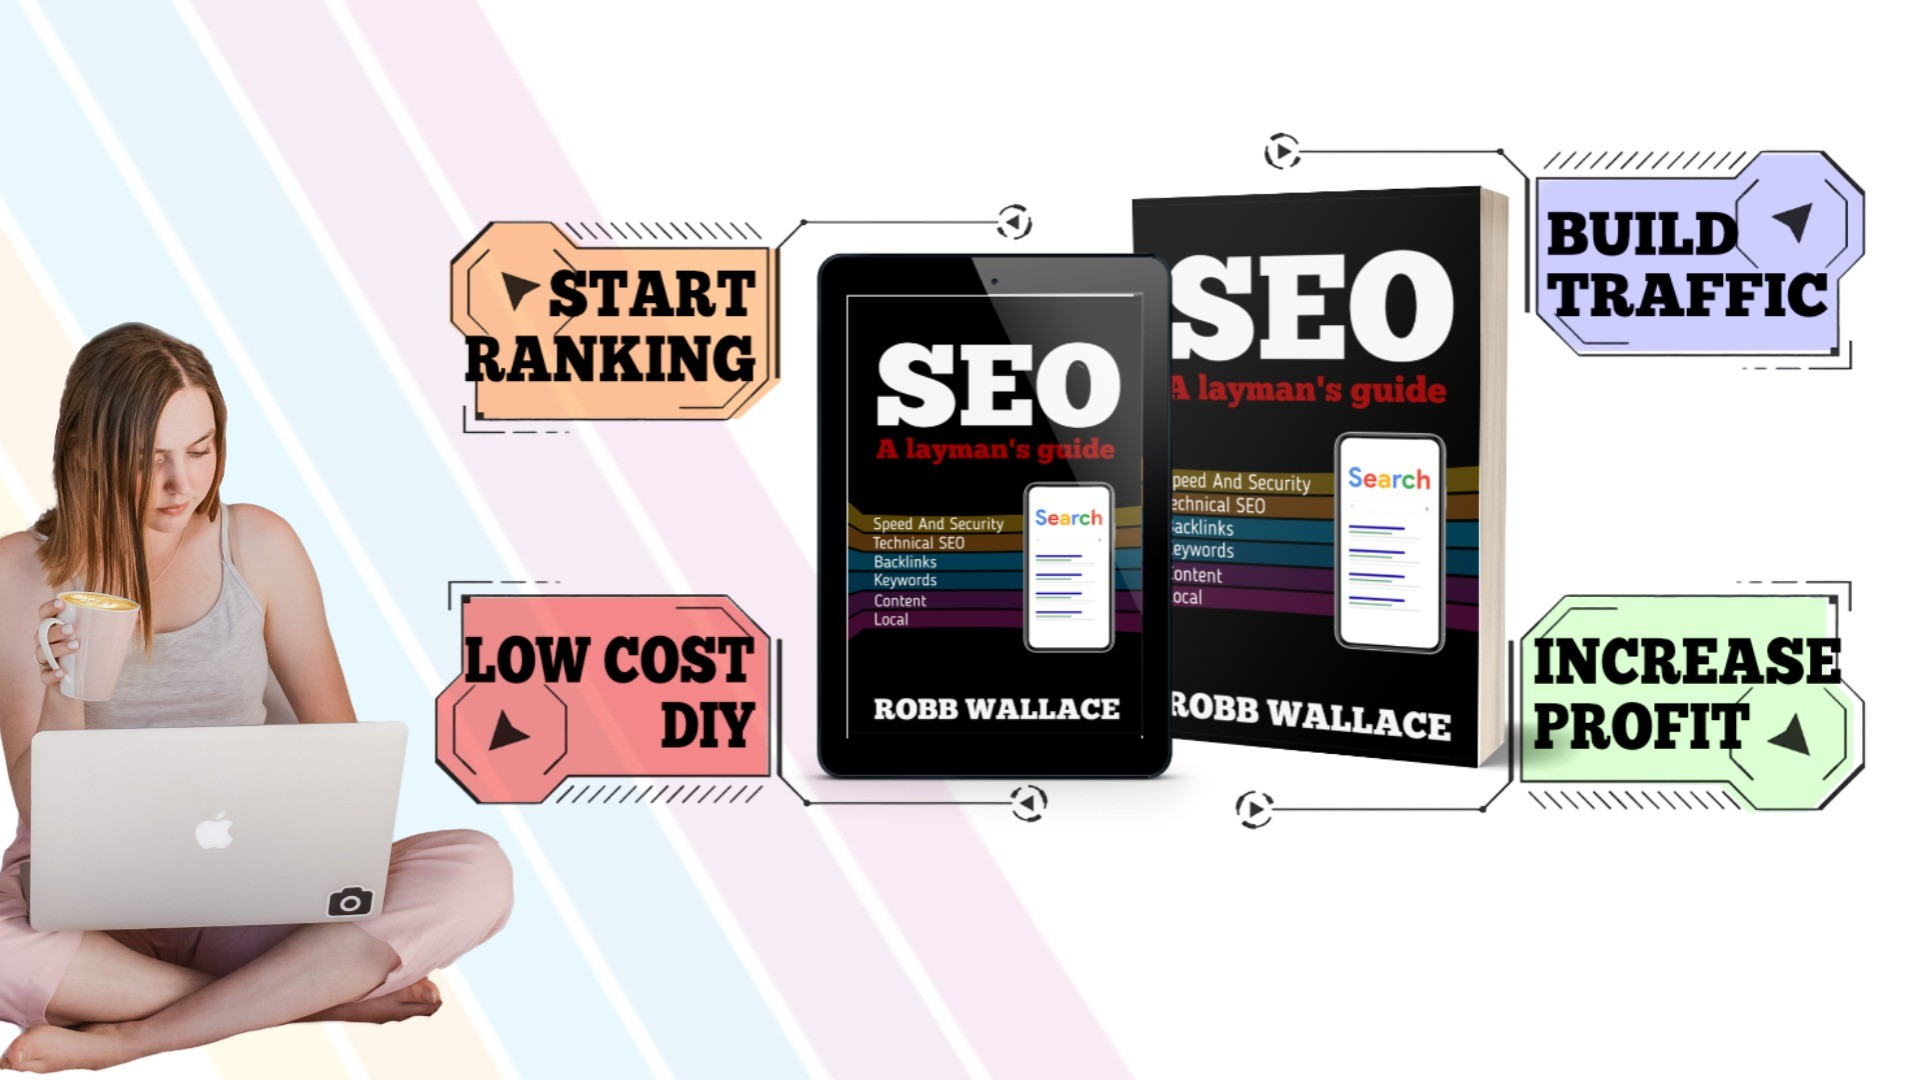 AppSumo Deal for SEO: A Layman's Guide